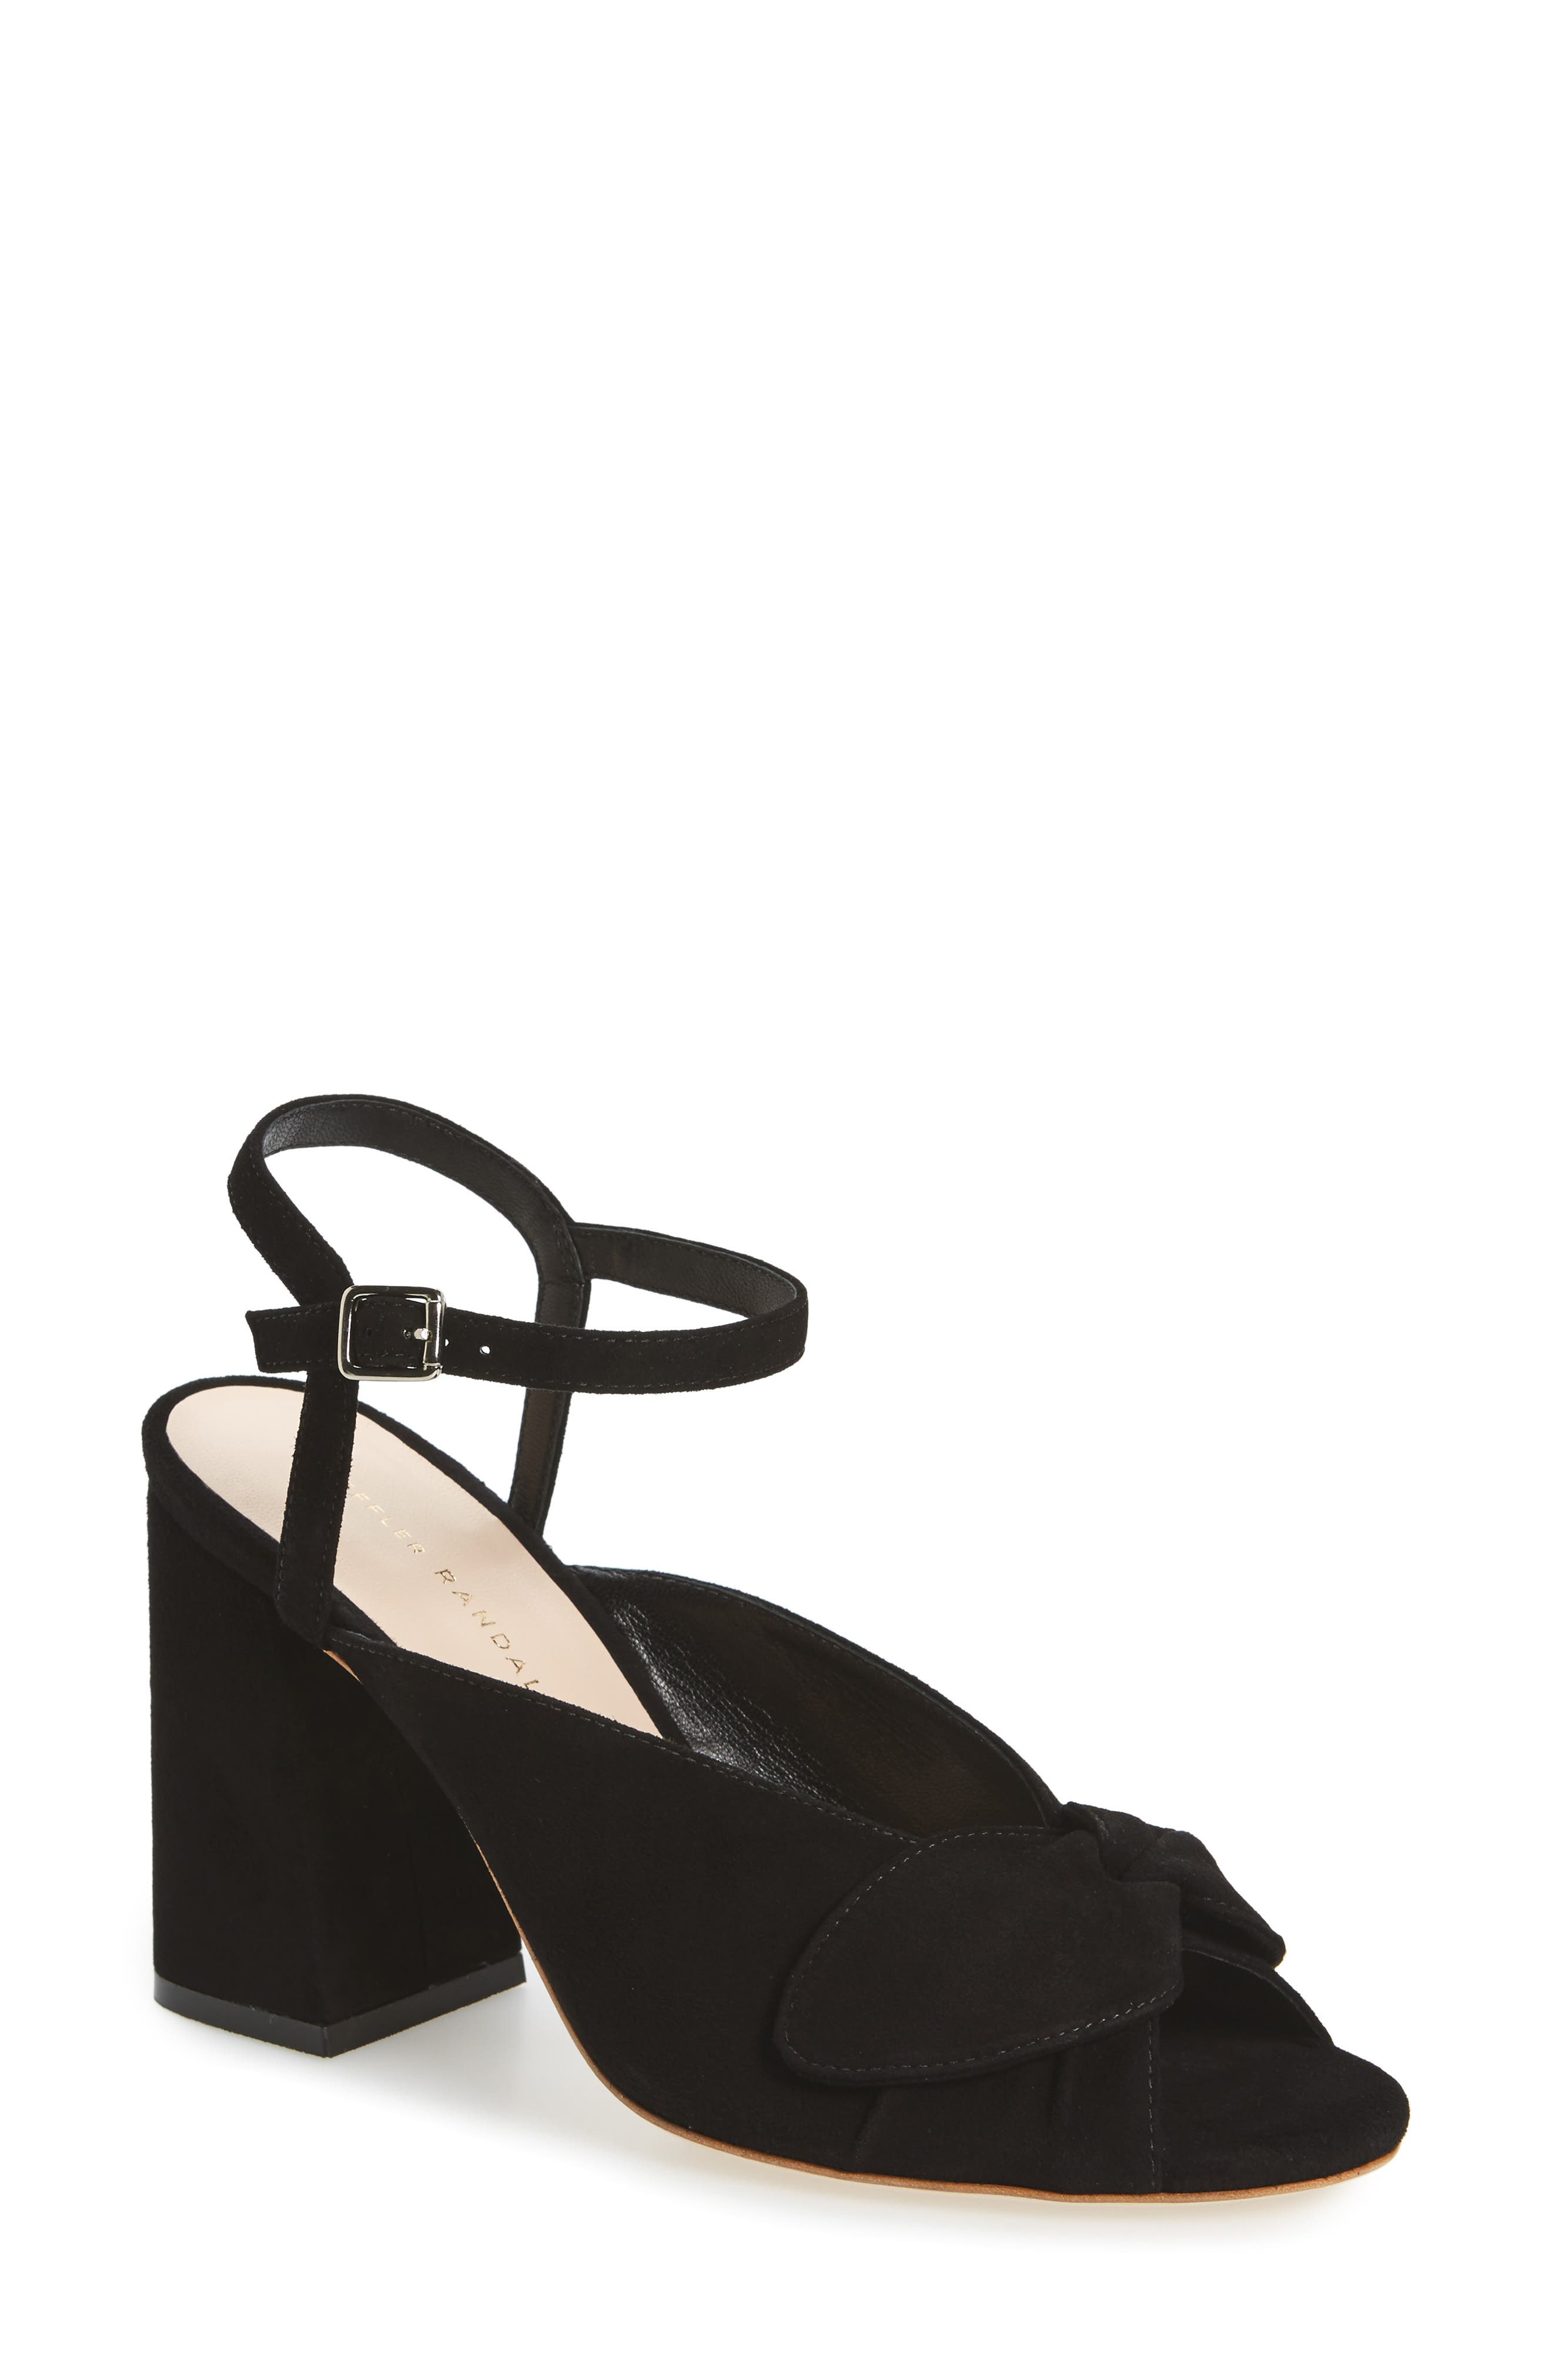 Loeffler Randal Leigh Sandal,                         Main,                         color, 001